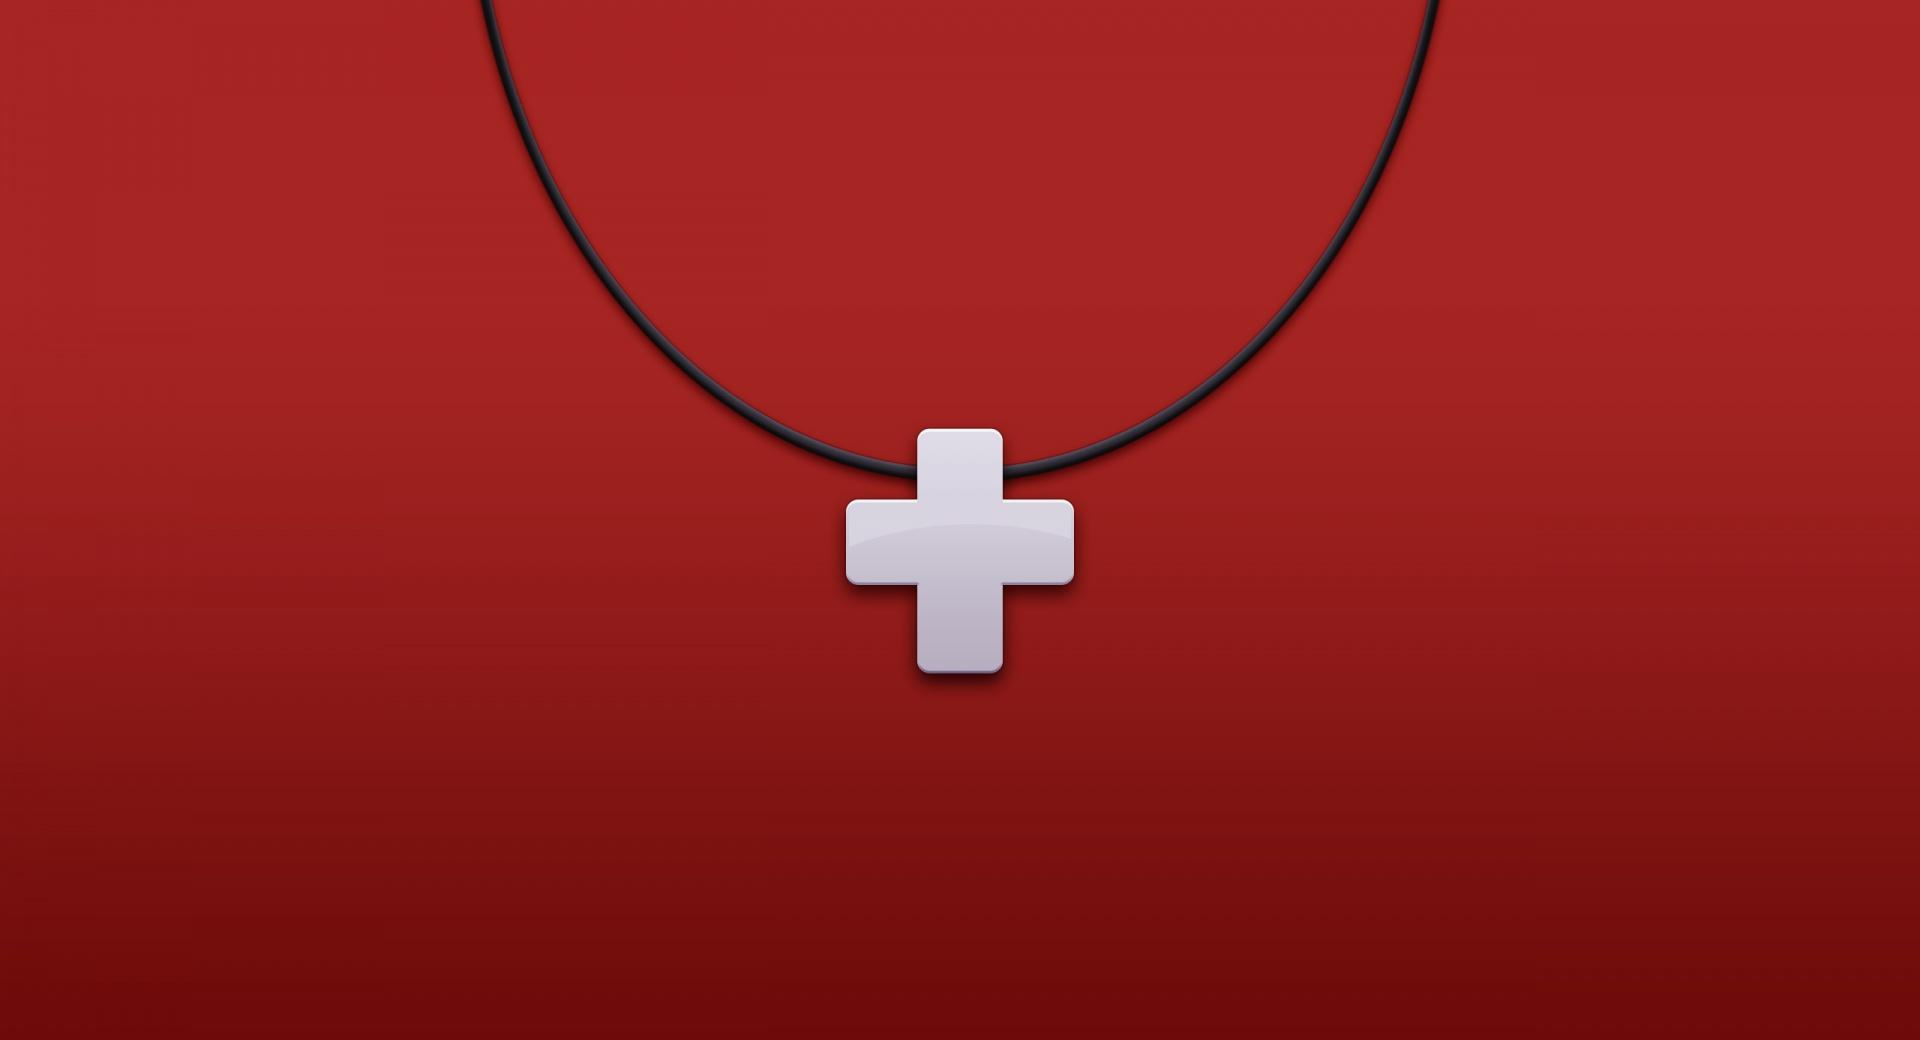 Cross Pendant wallpapers HD quality